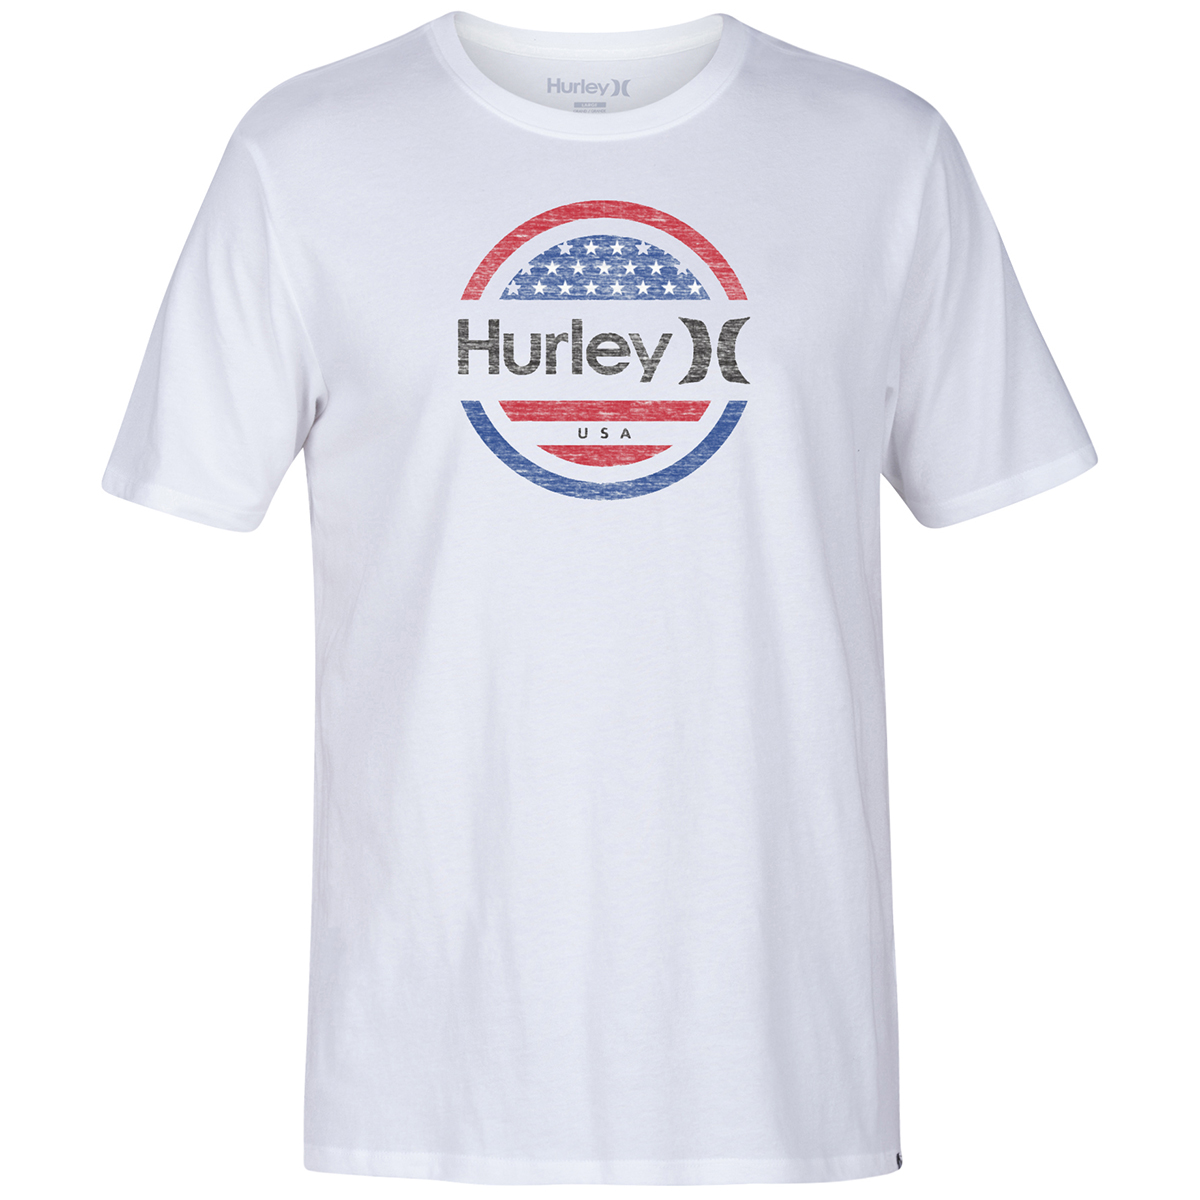 Hurley Men's Premium One And Only Circle Graphic Tee - White, M